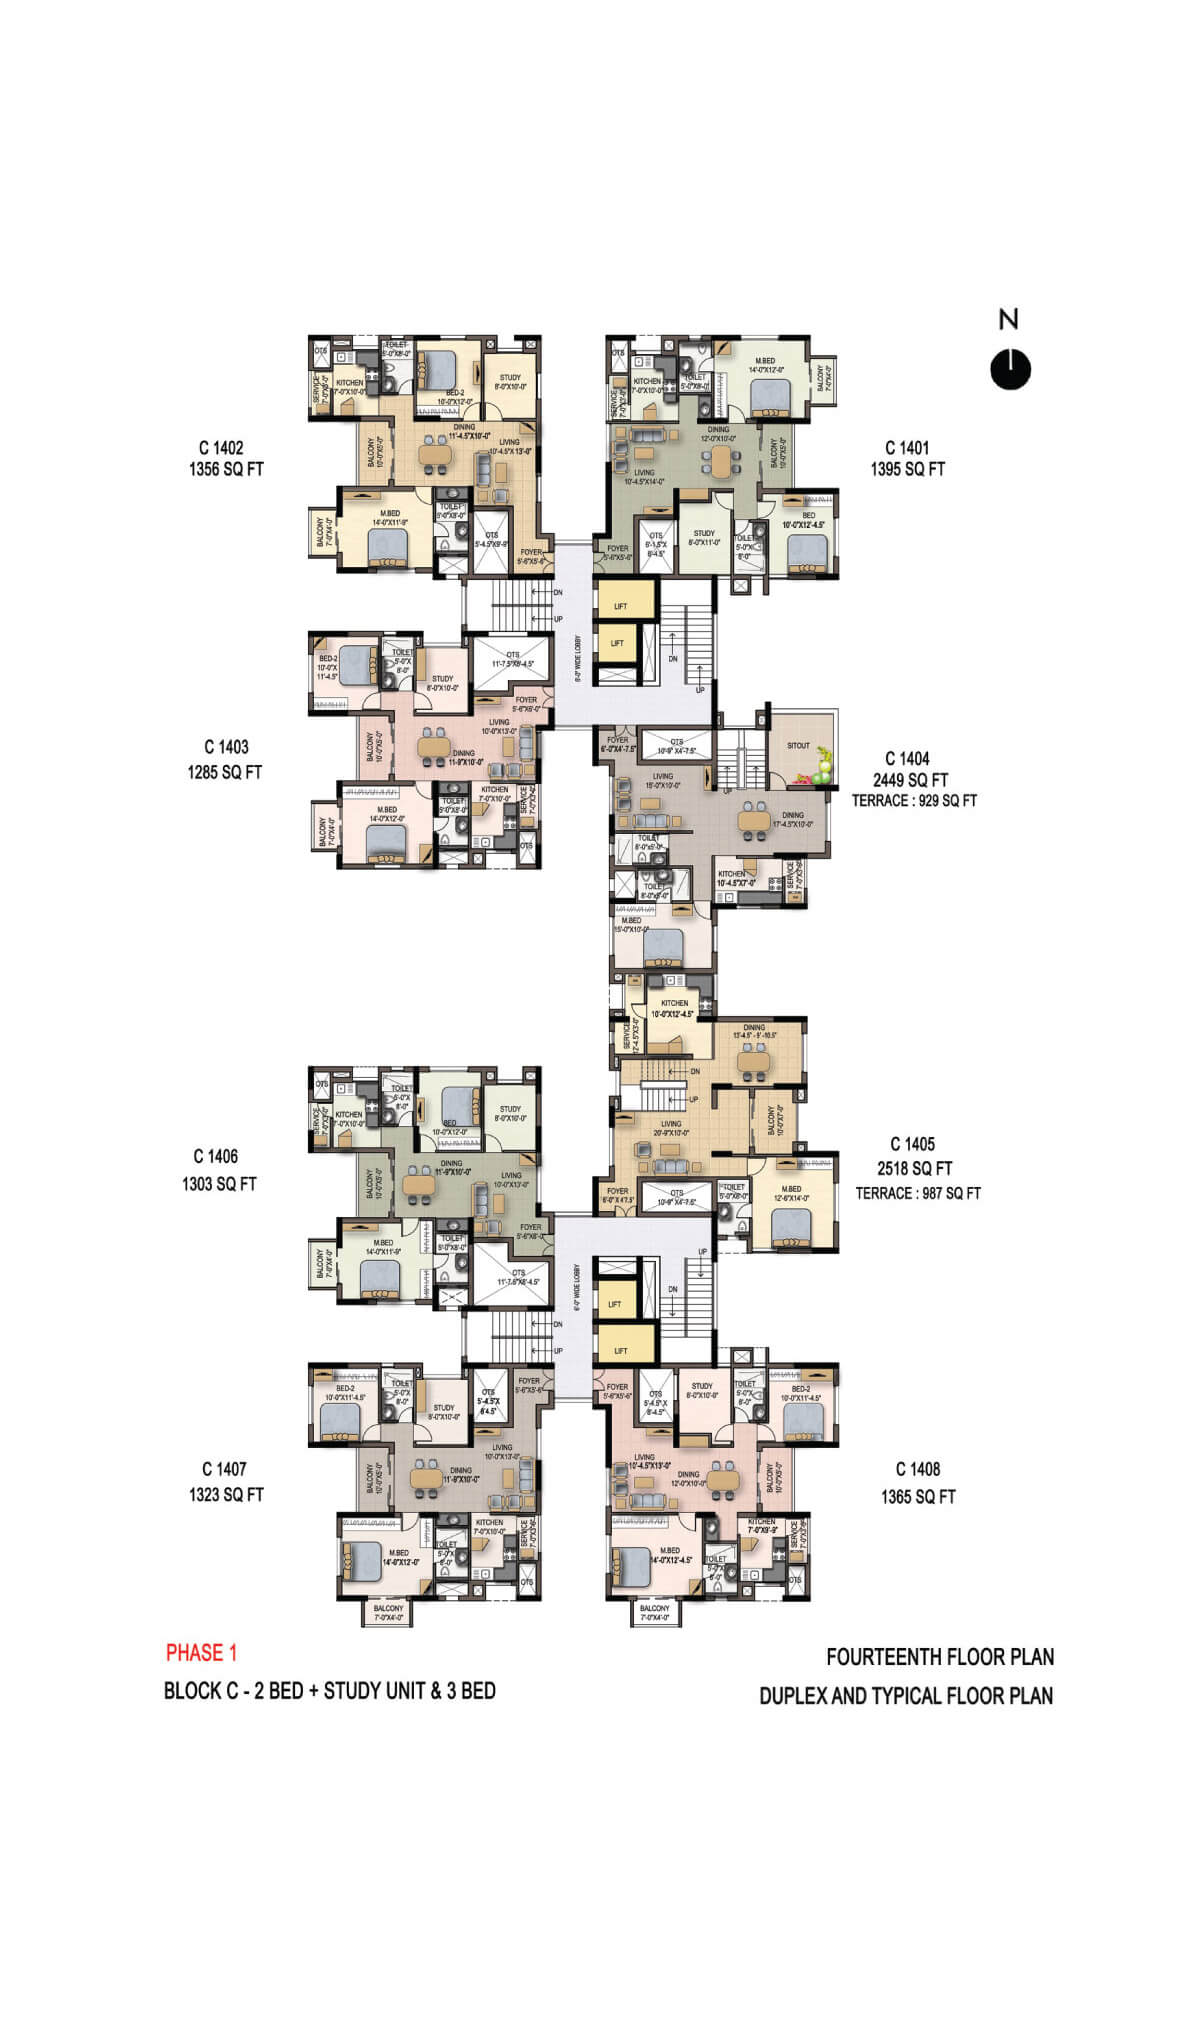 Fourteenth Floor Plan